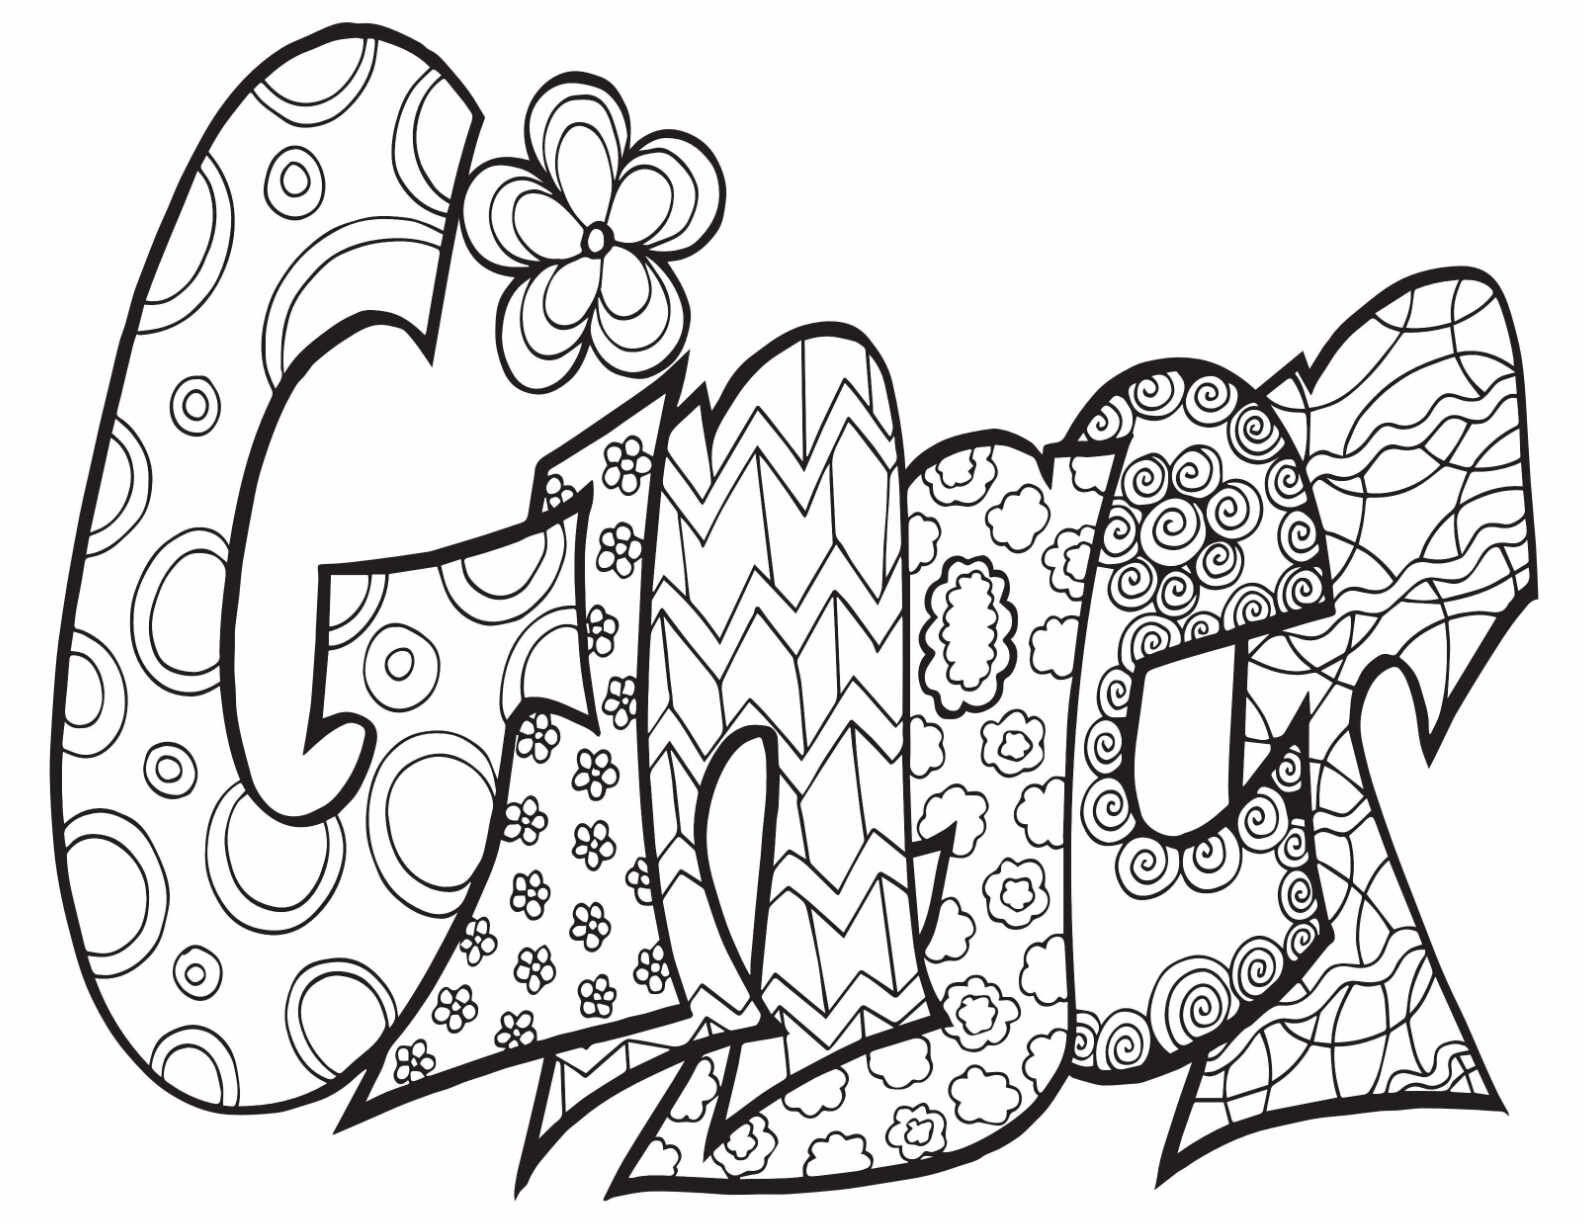 Ginger Two Free Printable Coloring Page In 2020 Printable